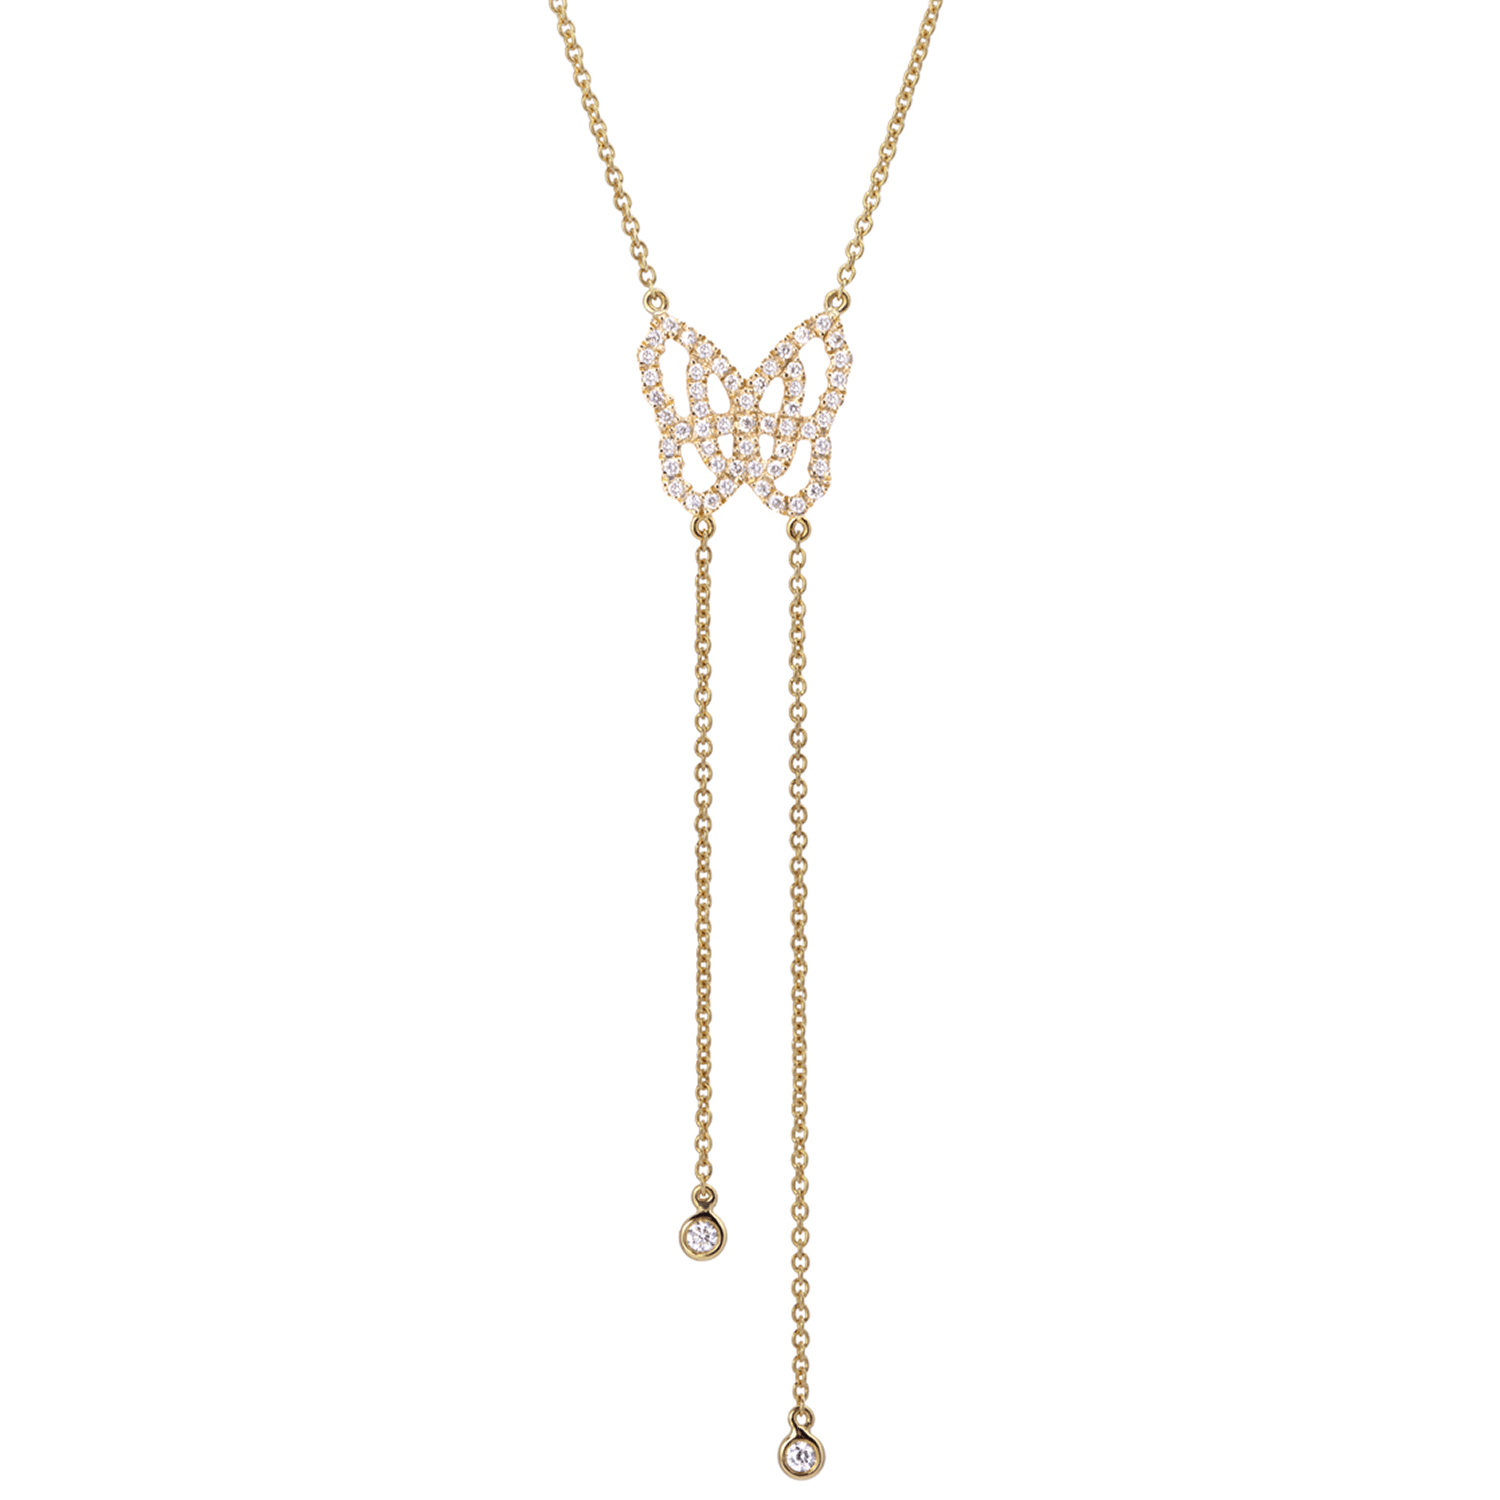 Collier Papillon Mini en Or Gris 18 k Pavé de Diamants